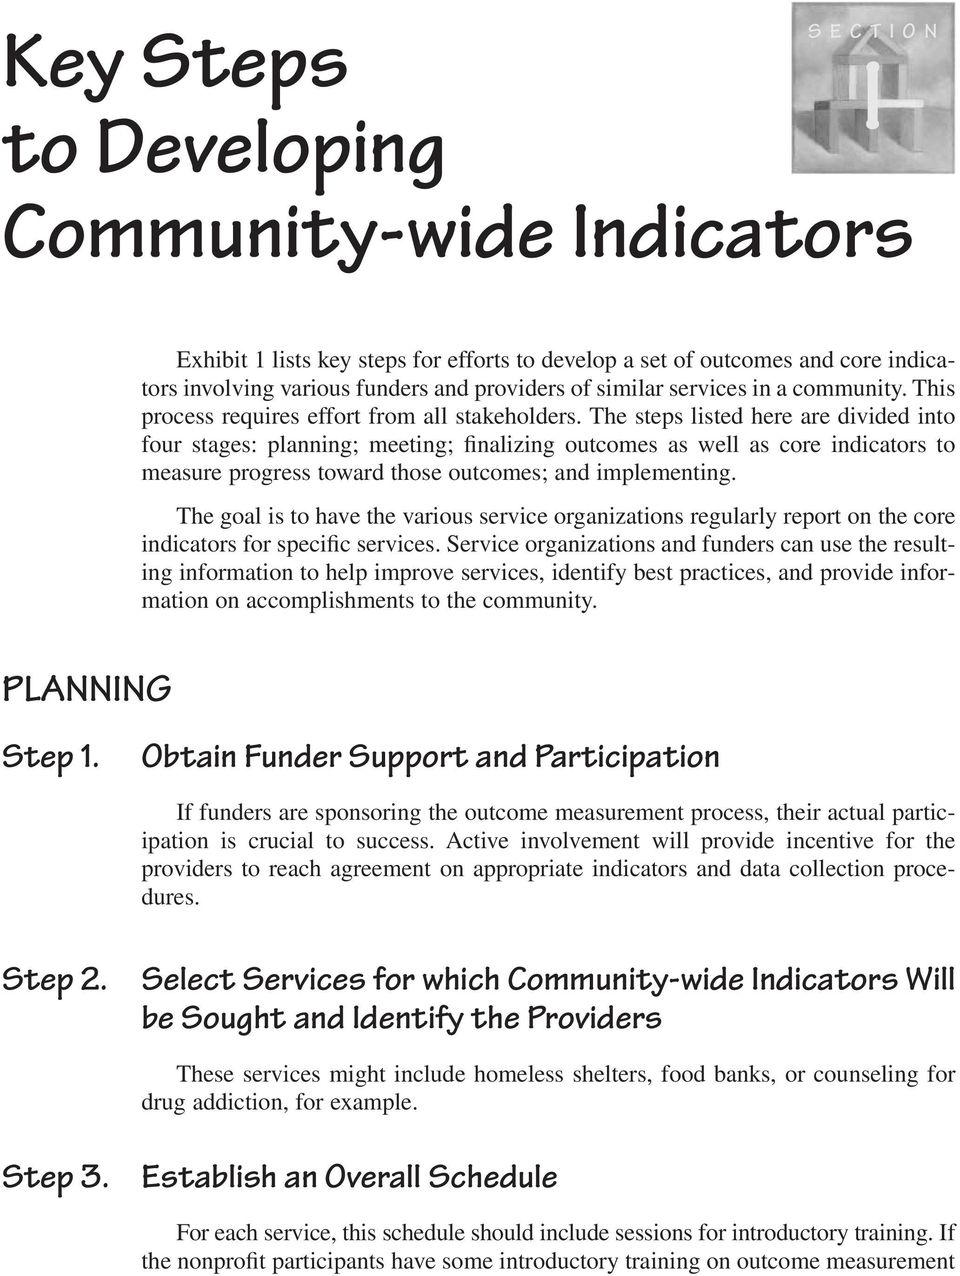 The steps listed here are divided into four stages: planning; meeting; finalizing outcomes as well as core indicators to measure progress toward those outcomes; and implementing.